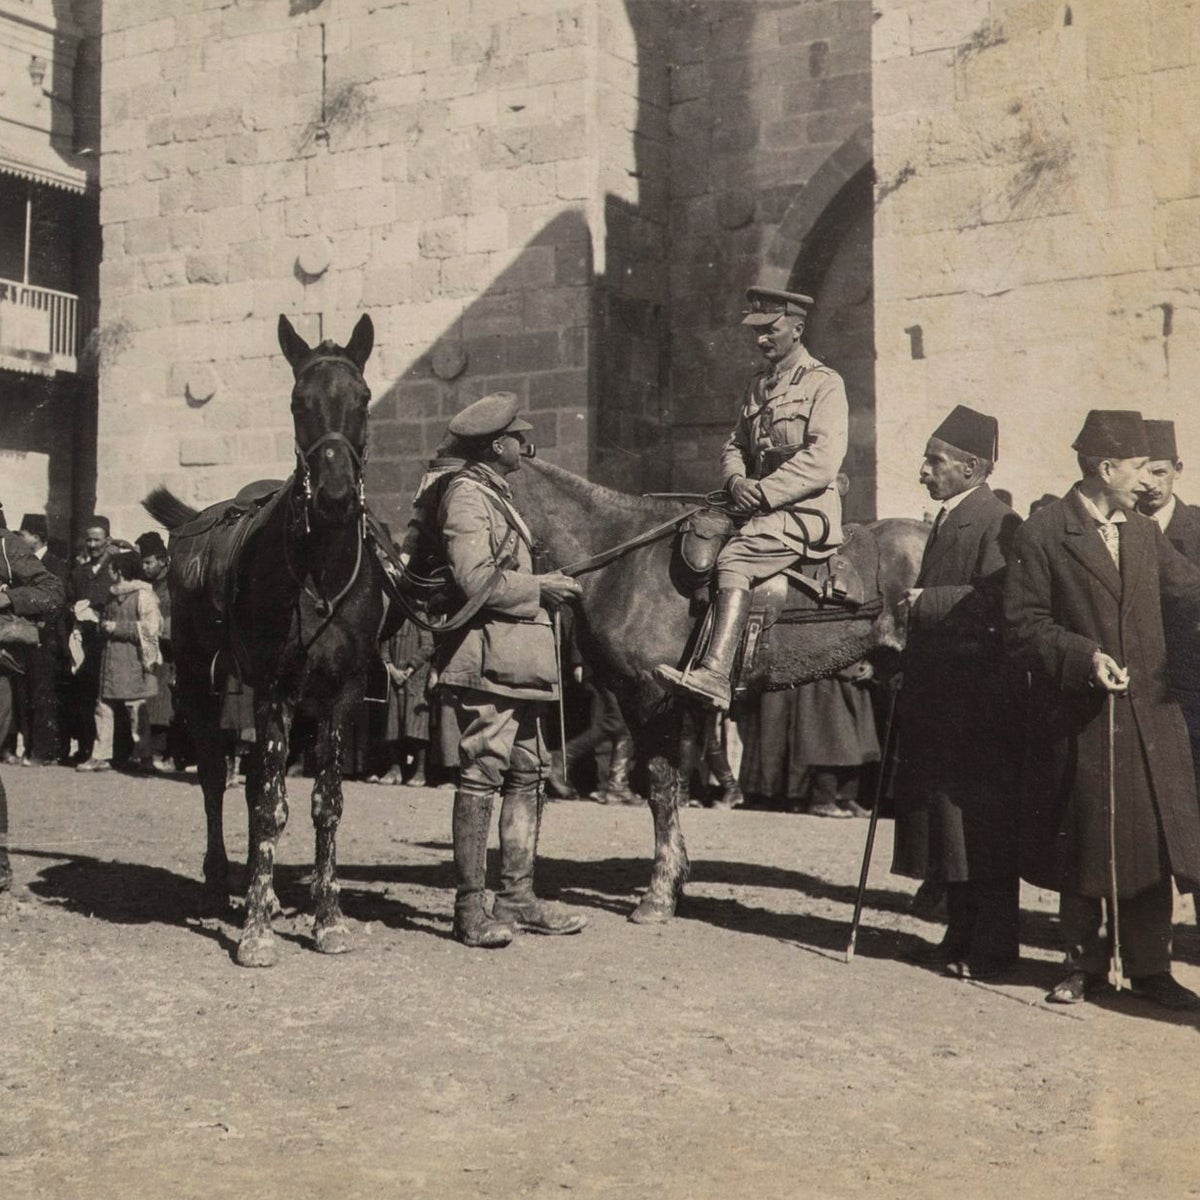 Brig.-Gen. Watson and Lt. Col. Bailey with Jerusalem Mayor Hussein al-Husseini at the Jaffa Gate, December 9, 1917